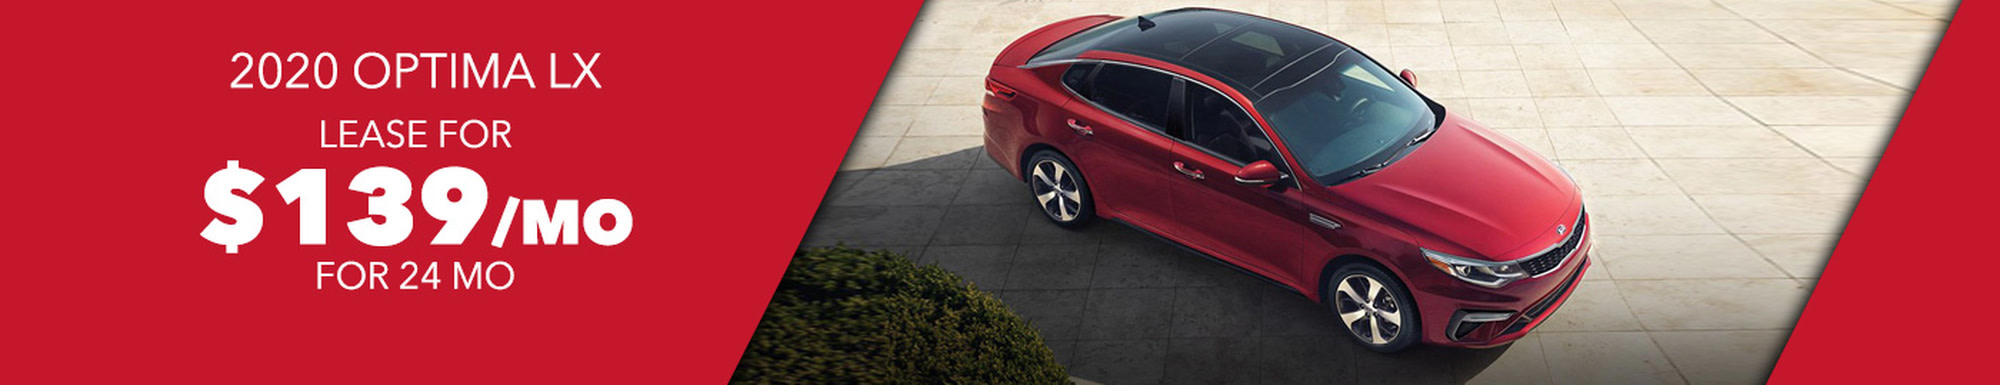 New Optima Offer